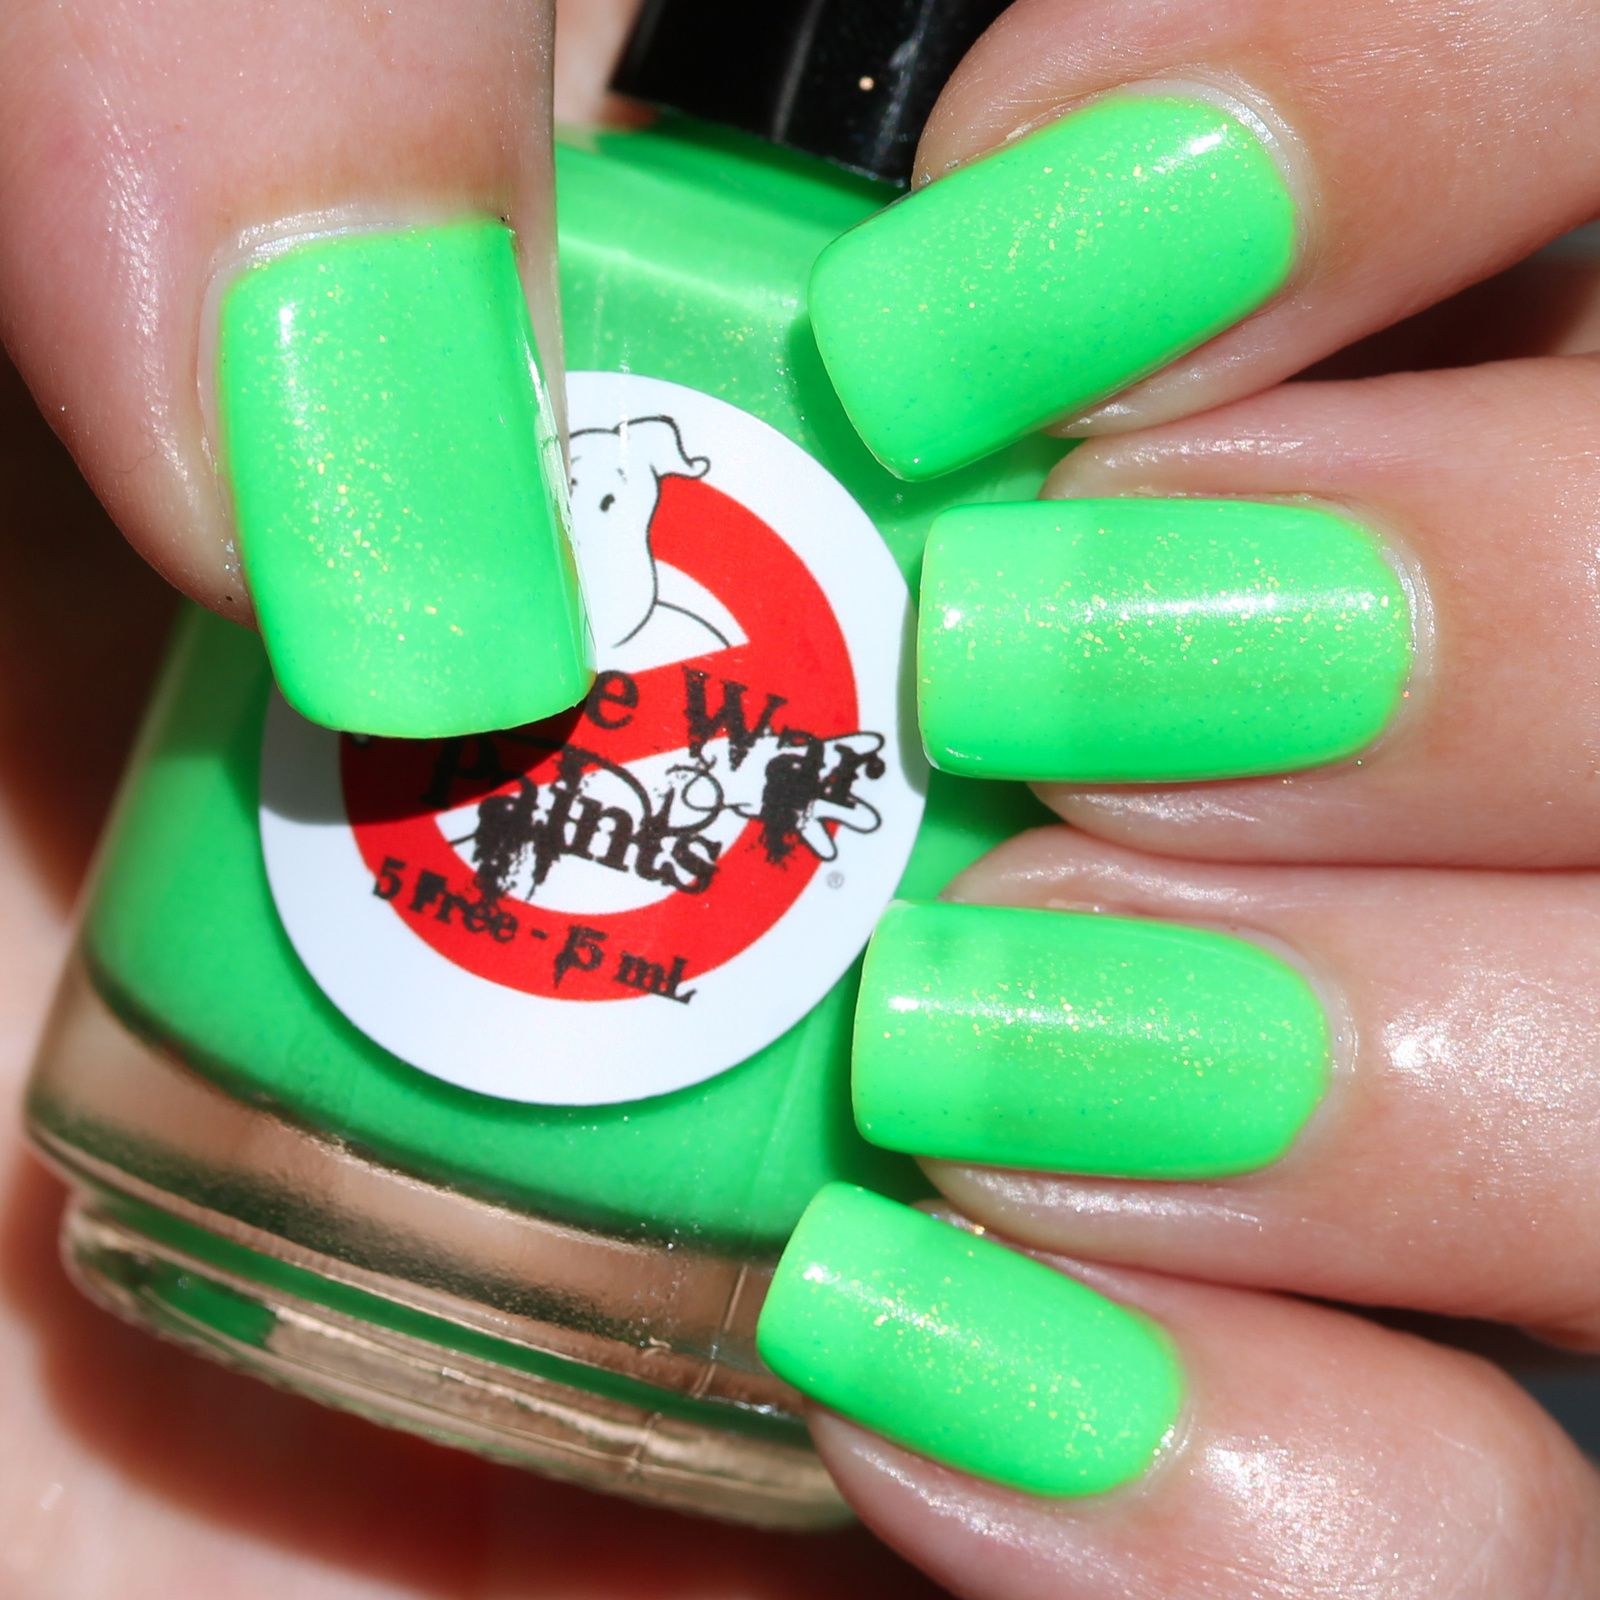 Native War Paints Slimer (4 coats, no top coat)